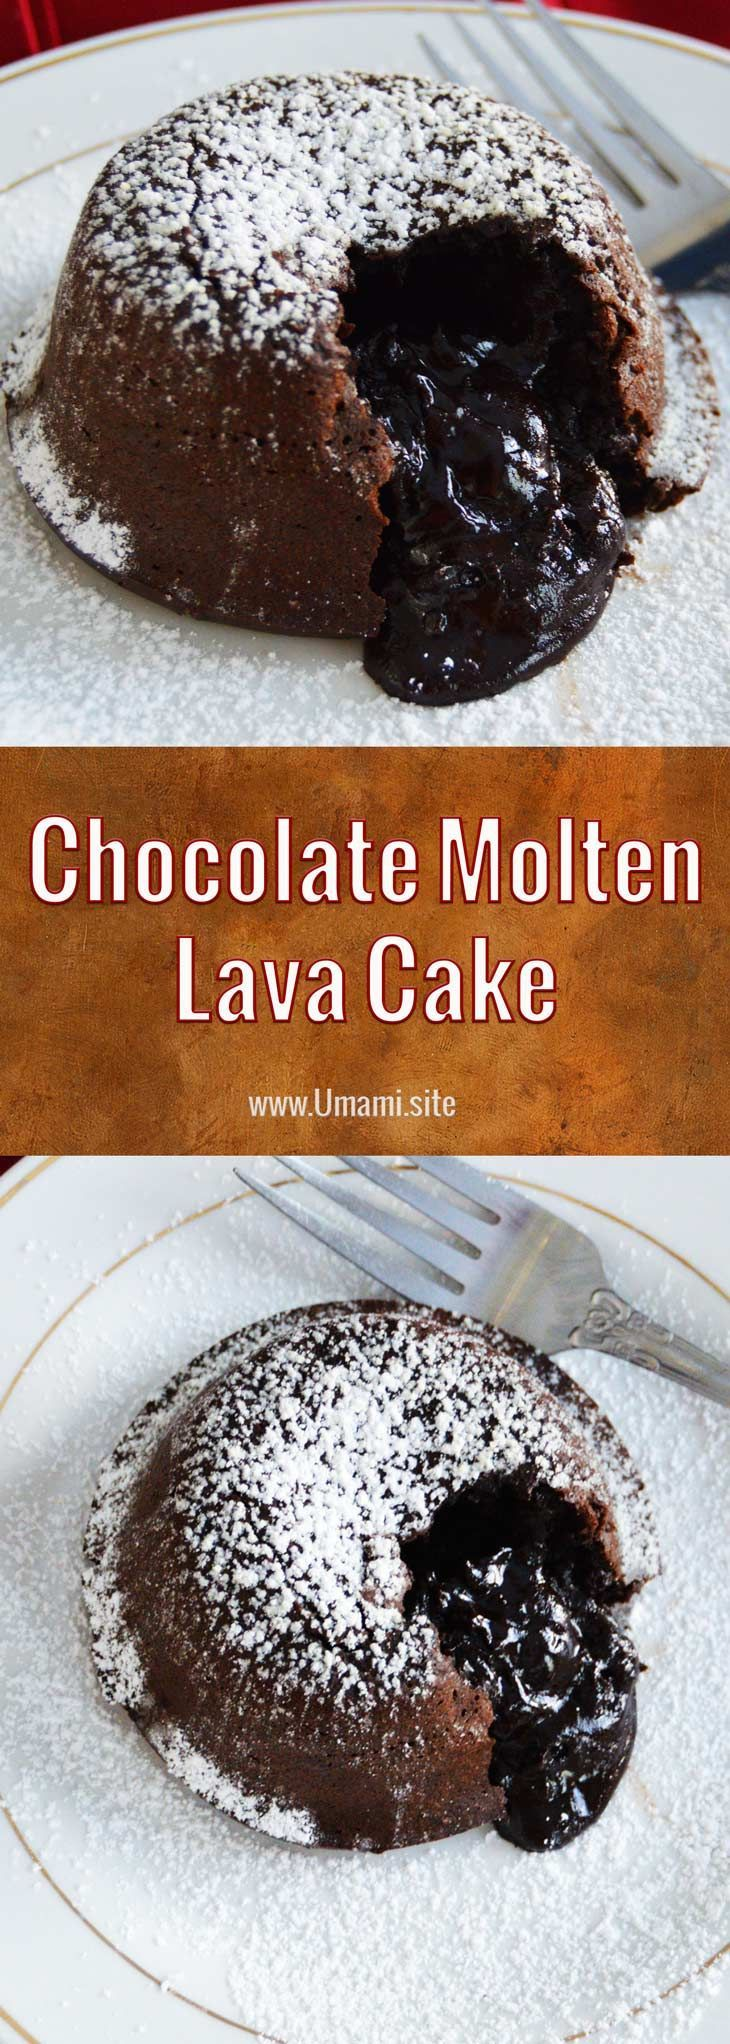 Chocolate Molten Lava Cakes are a dessert that is easy to make and a great way to finish off a romantic dinner at home or make a crowd of chocolate lovers very happy. #recipes #chocolate #cakes